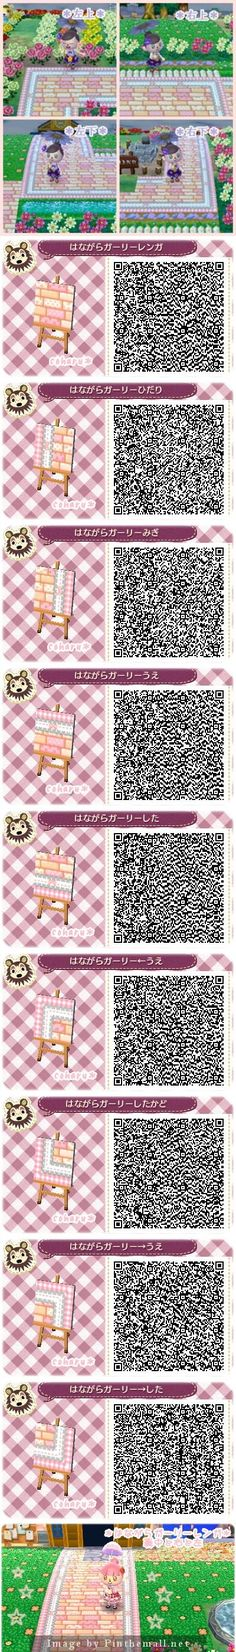 Pin By Luna Rip On Acnl Path Accent Tiles T